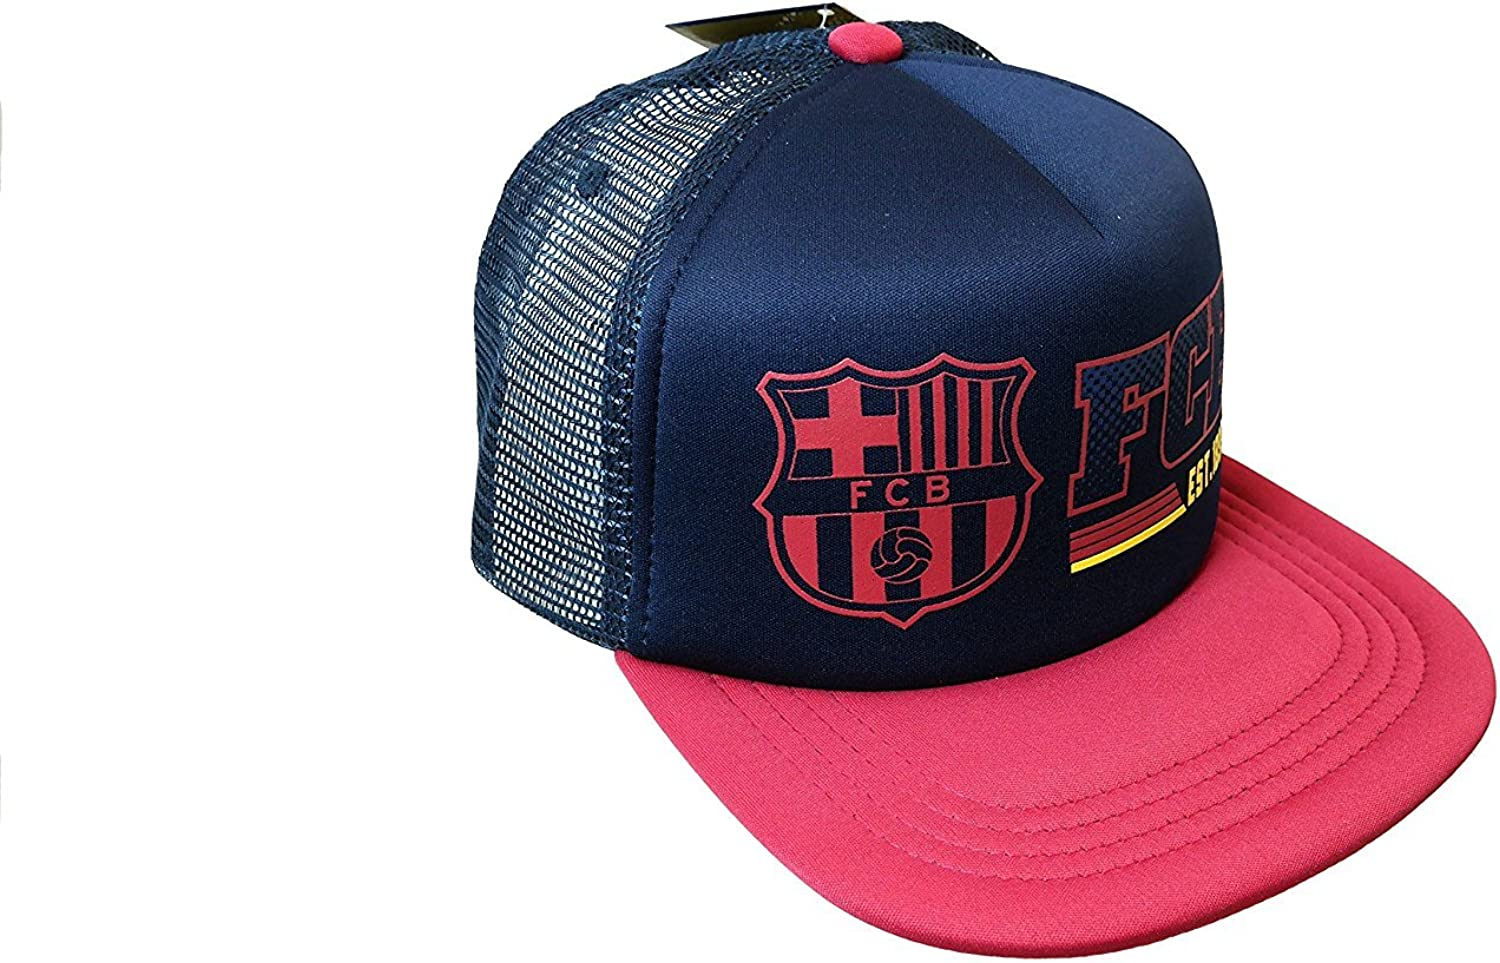 FC Barcelona Authentic Official Licensed Product Soccer Cap